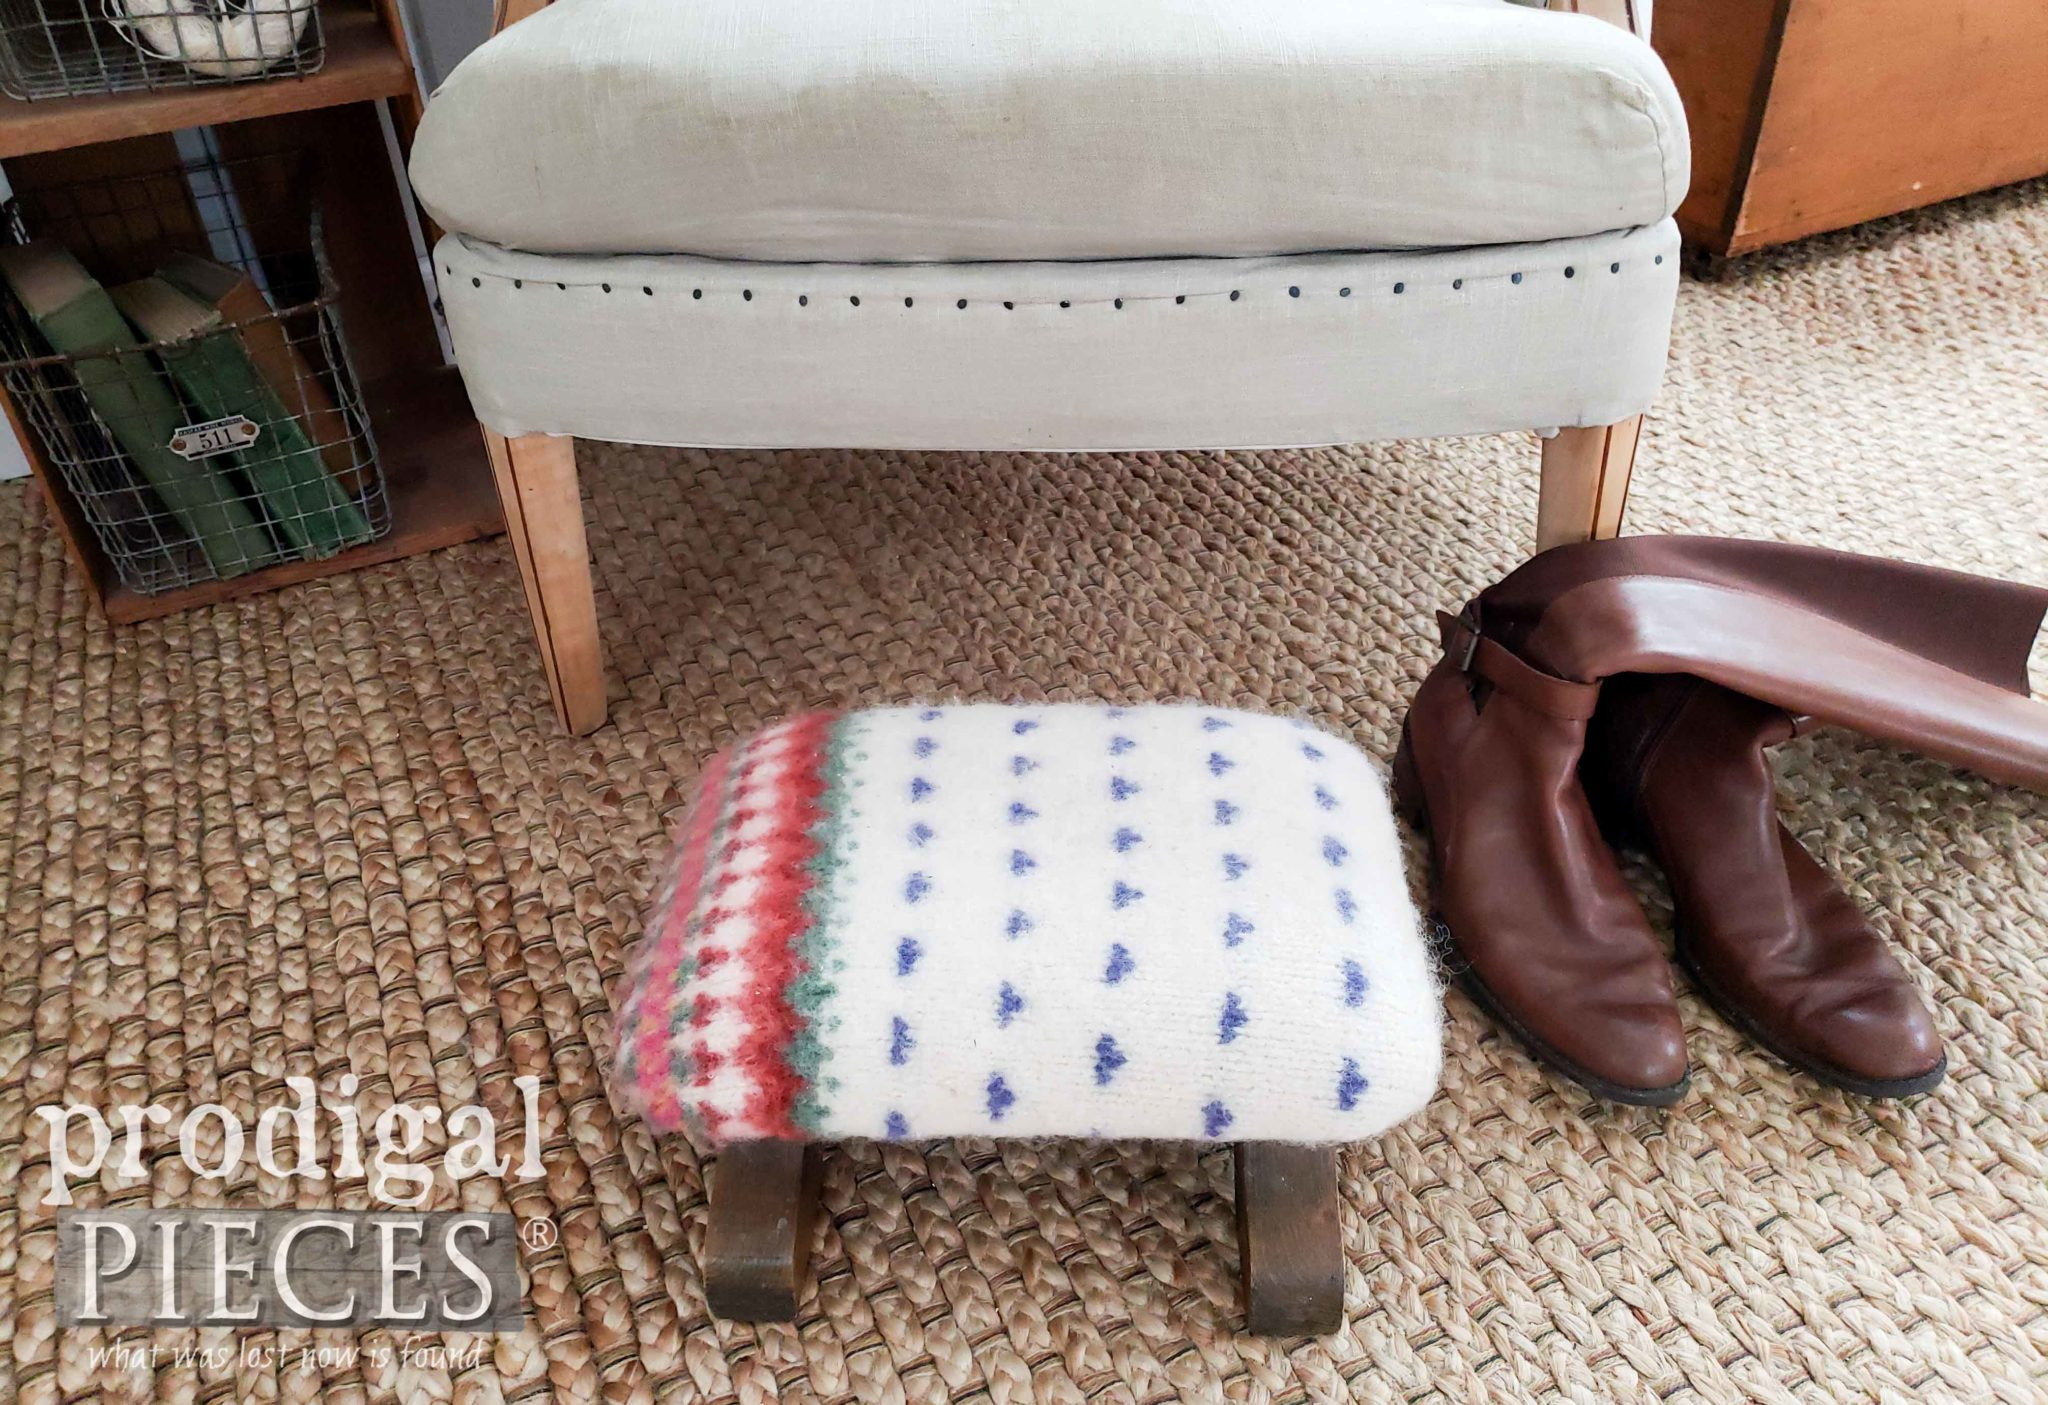 White Felted Wool Footstool Created from Thrift Store Sweater for a Nordic Style | Video Tutorial by Larissa of Prodigal Pieces | prodigalpieces.com #prodigalpieces #nordic #diy #farmhouse #furniture #home #homedecor #homedecorideas #shopping